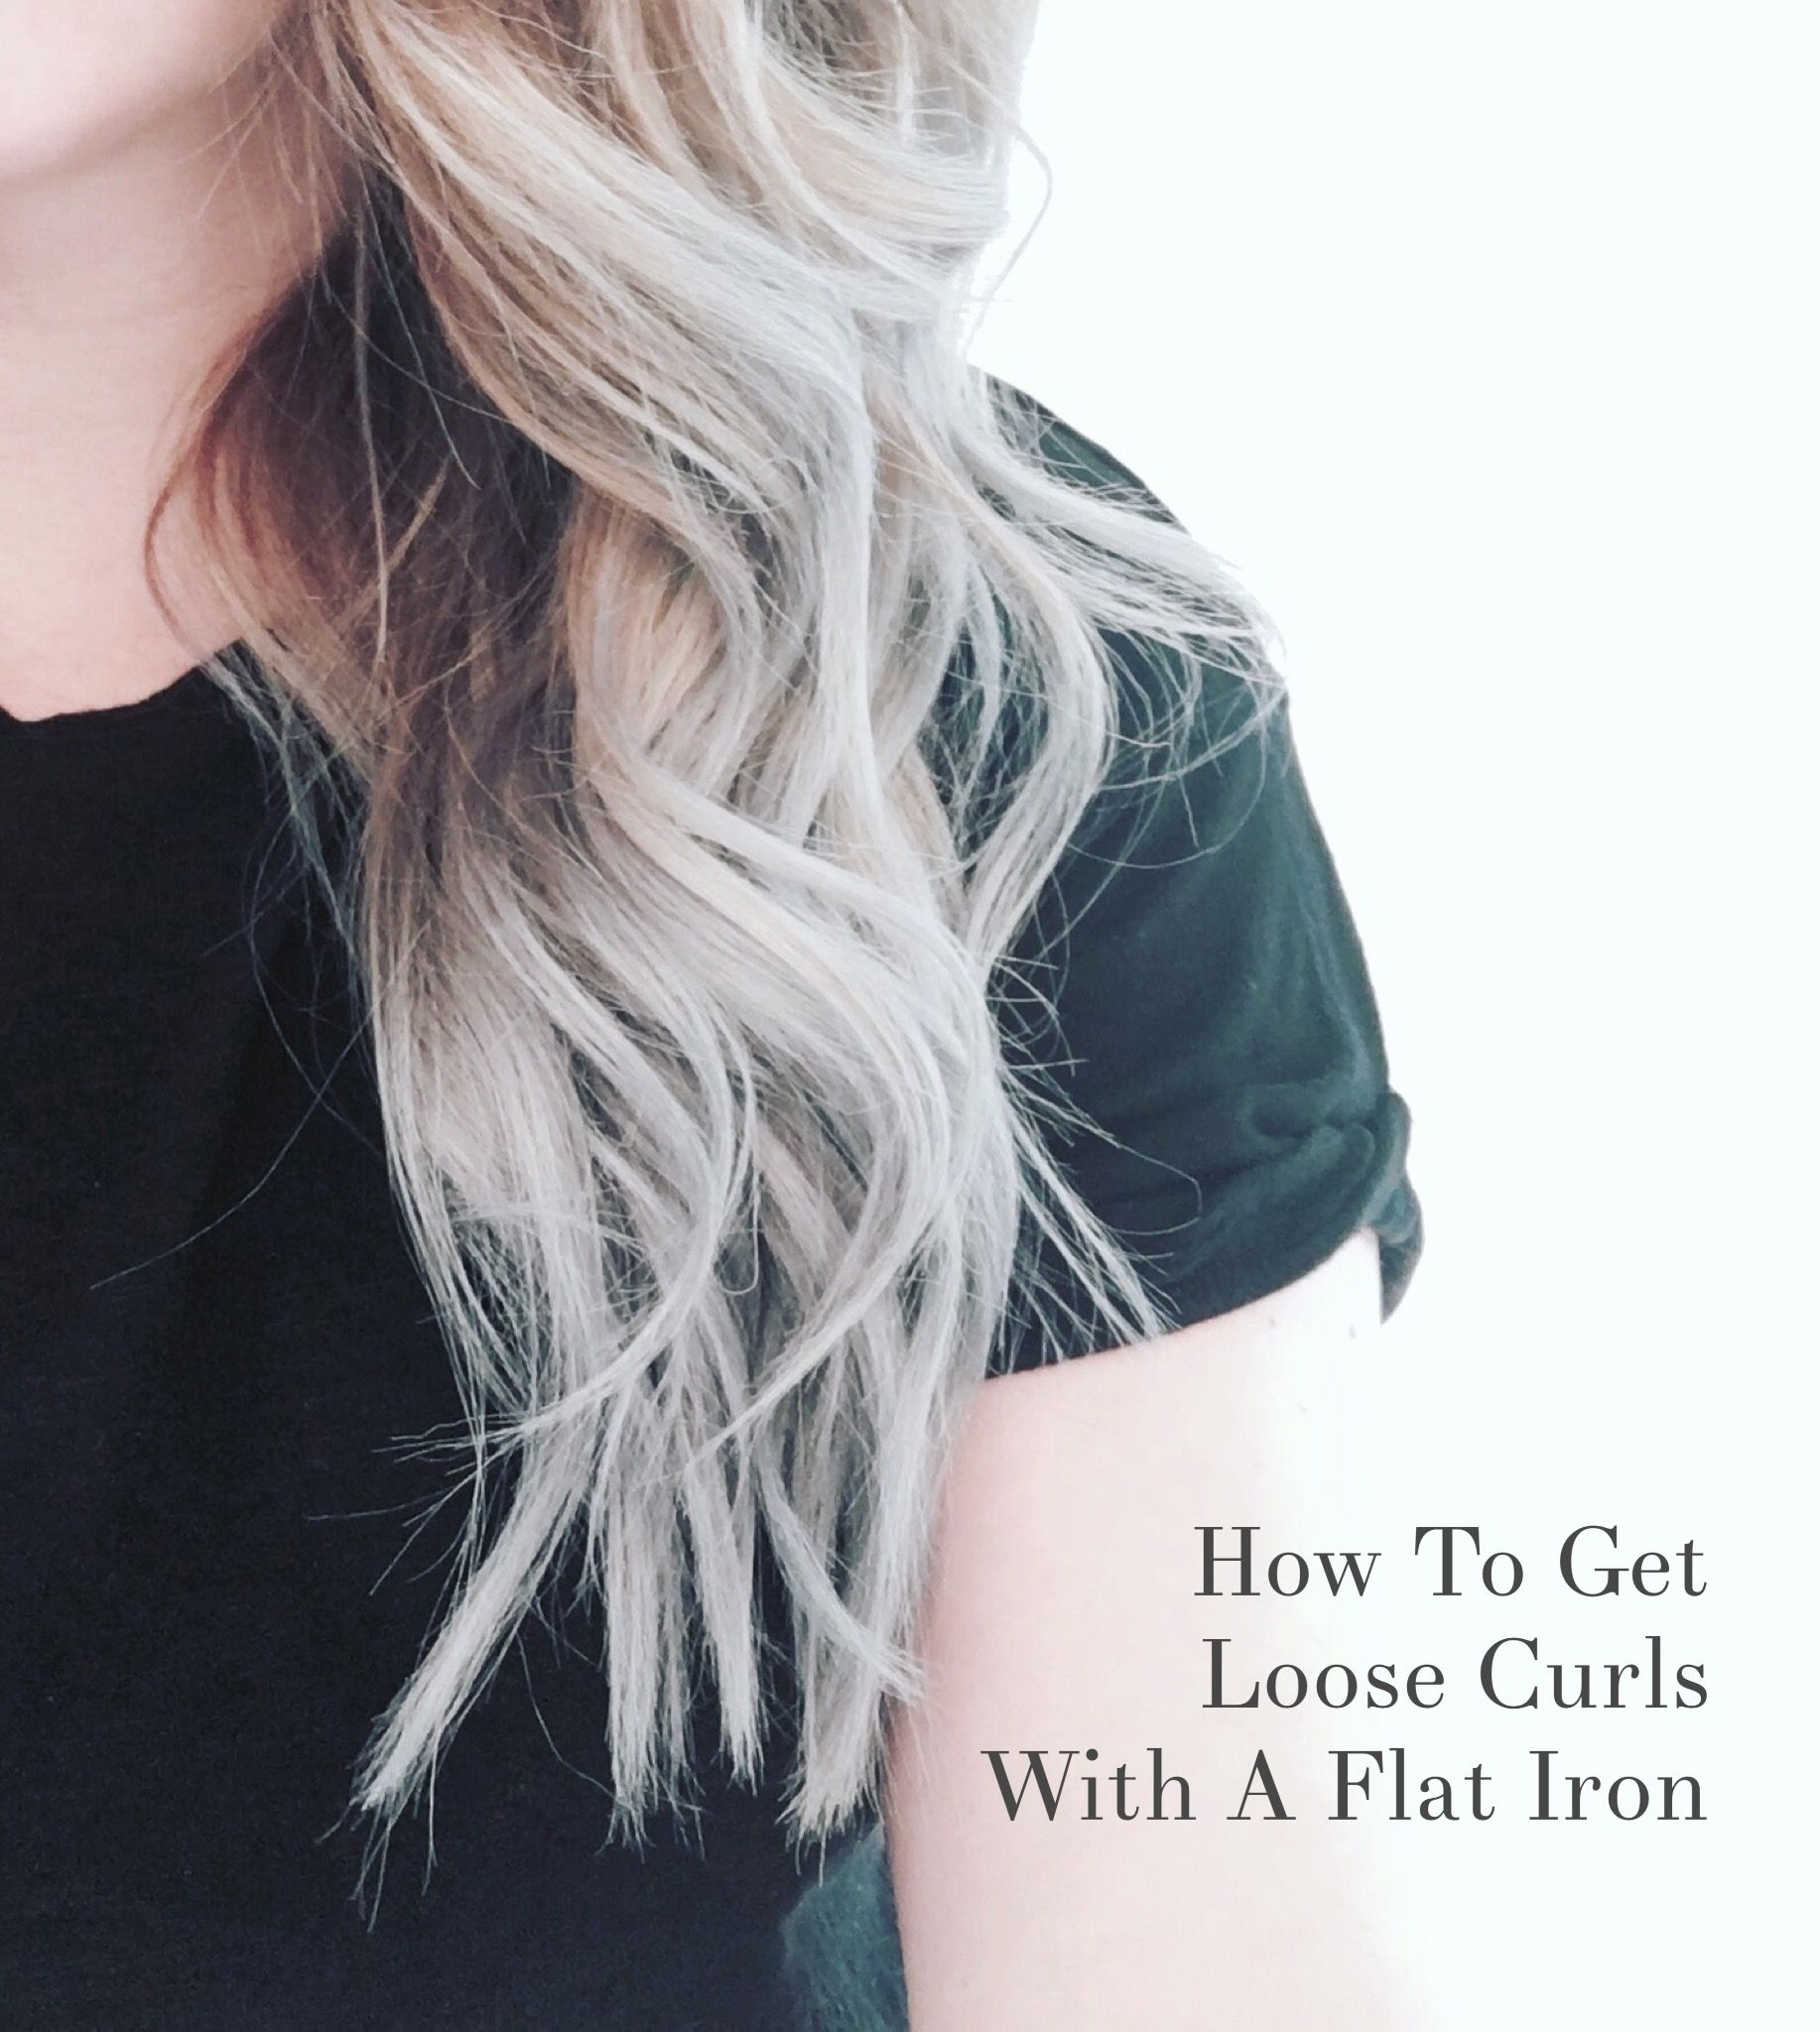 Using a flat iron to curl my hair is my favorite, and fastest, way to curl my hair. I'll show you how I get fast, big, beautiful curls using a flat iron!